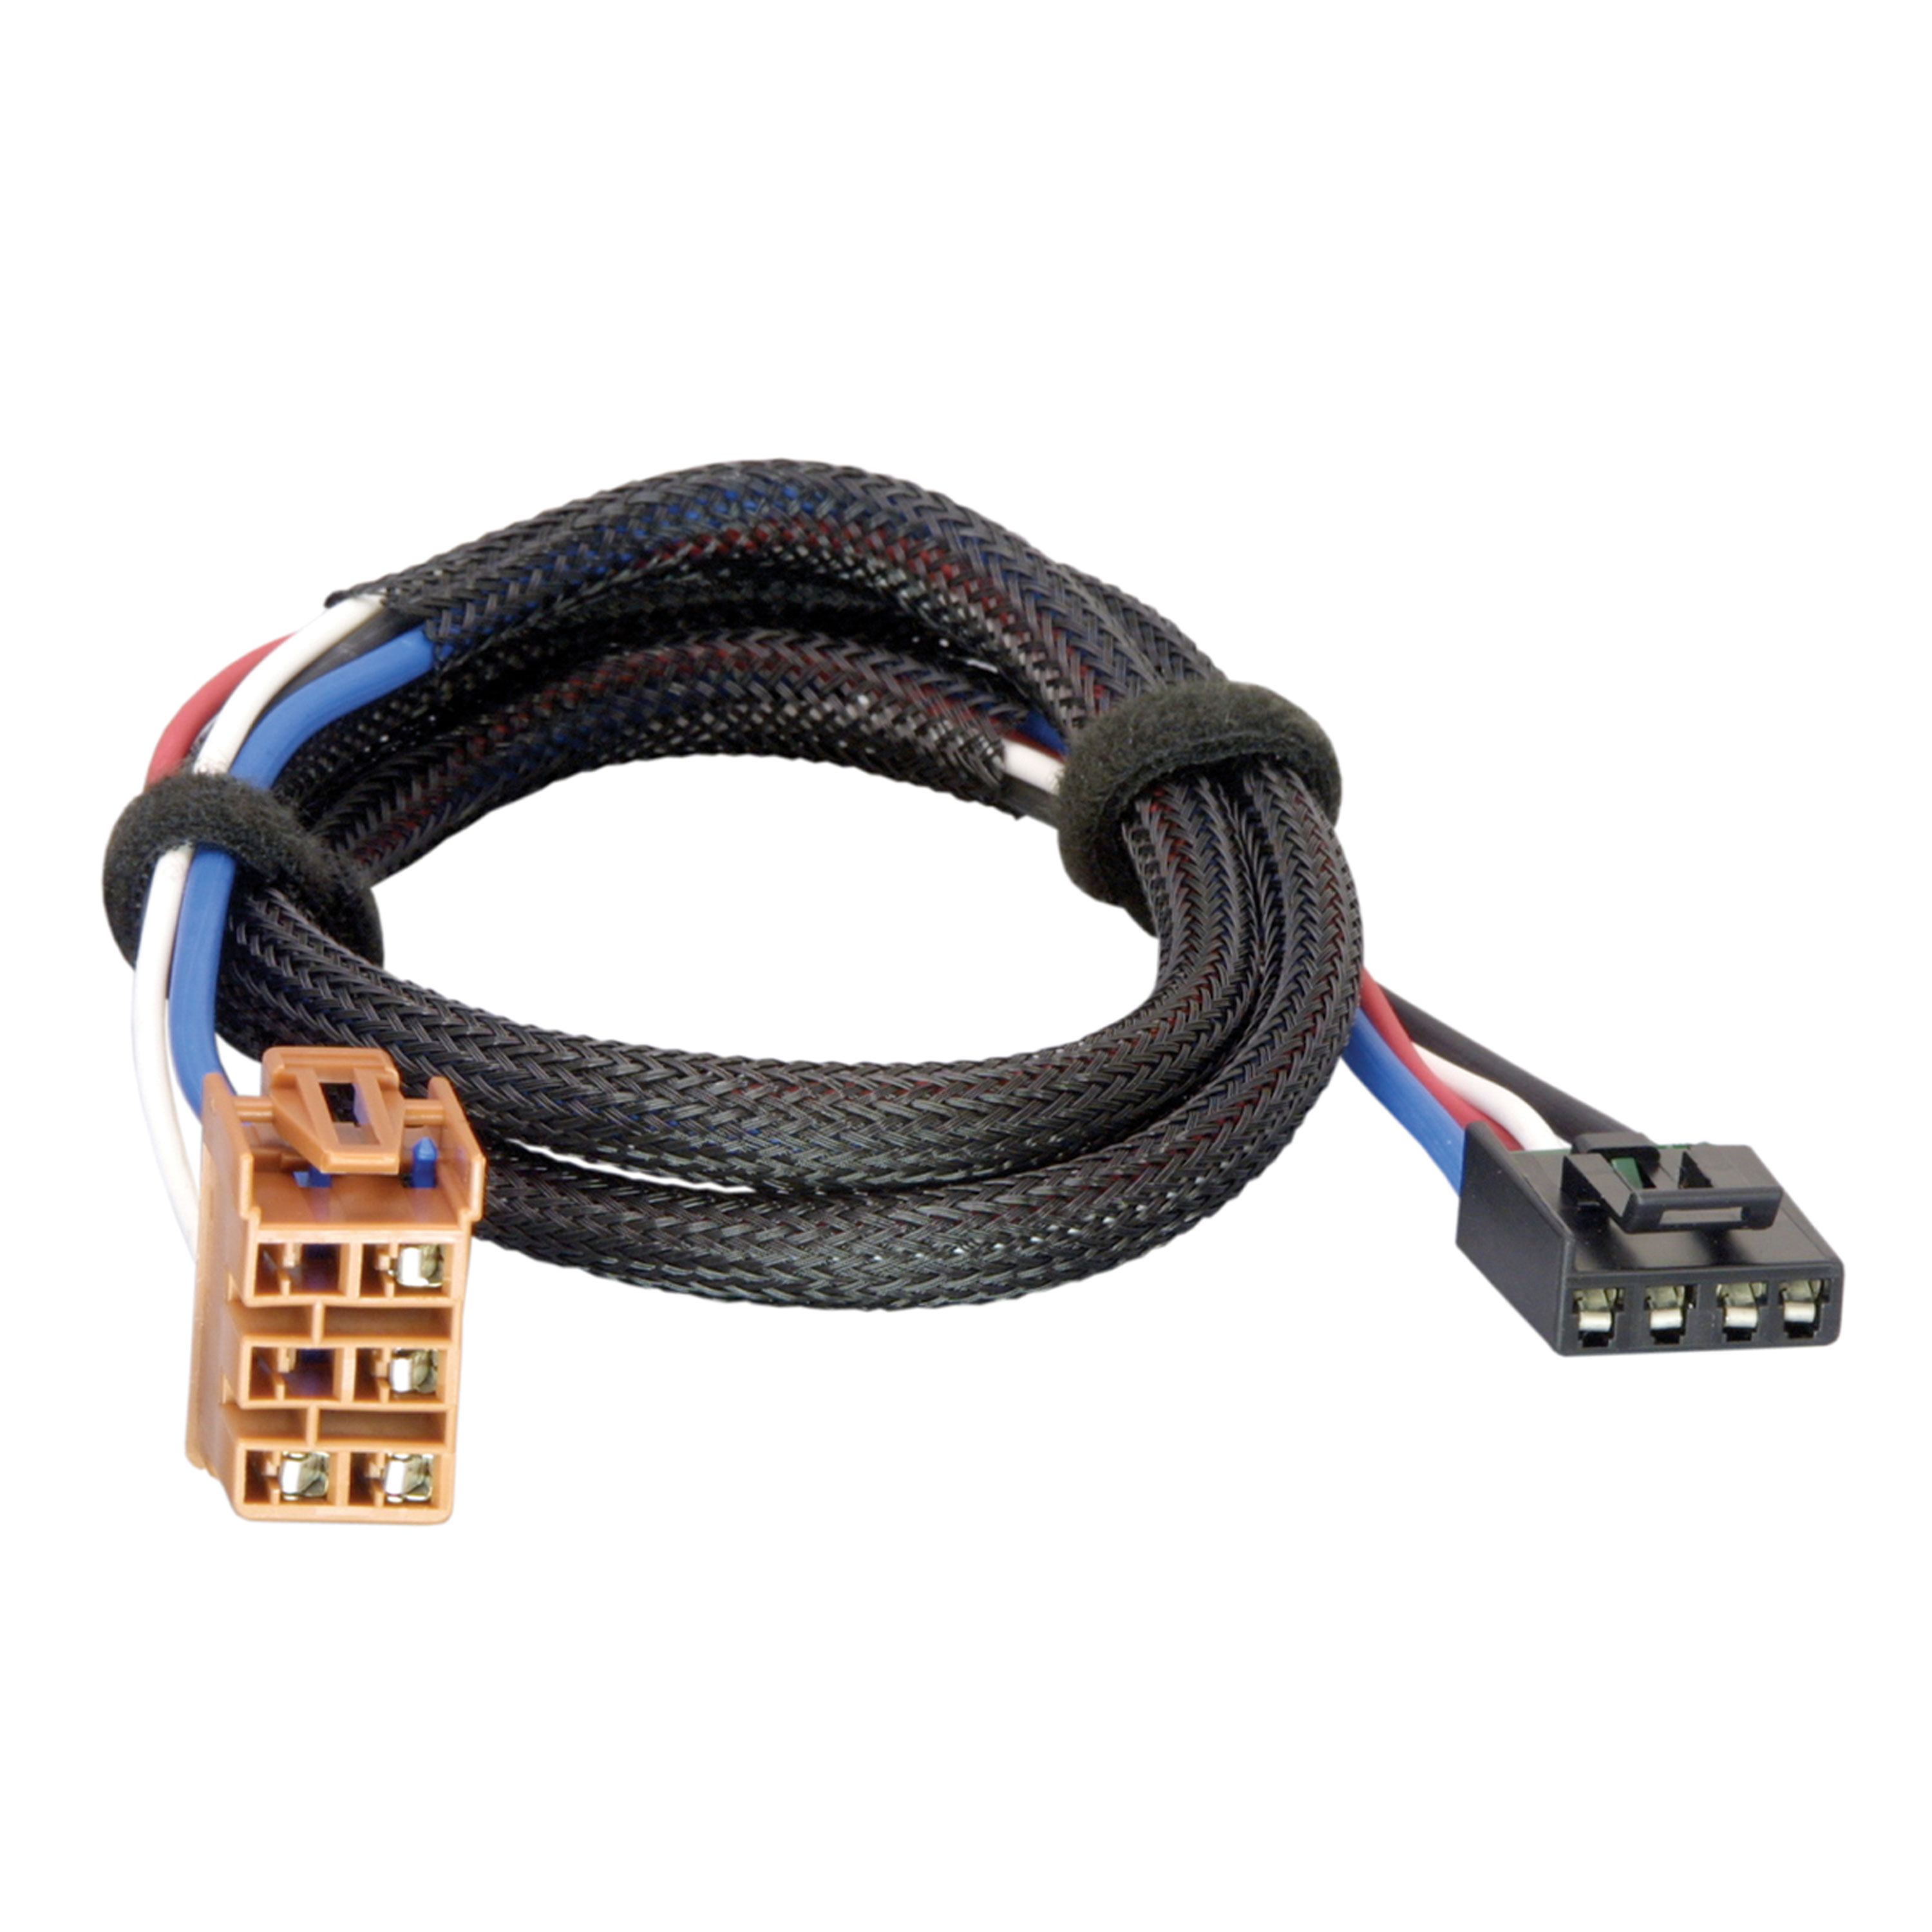 tekonsha 3025 p trailer brake control wiring harness 2 plugs gm draw tite wiring [ 3000 x 3000 Pixel ]